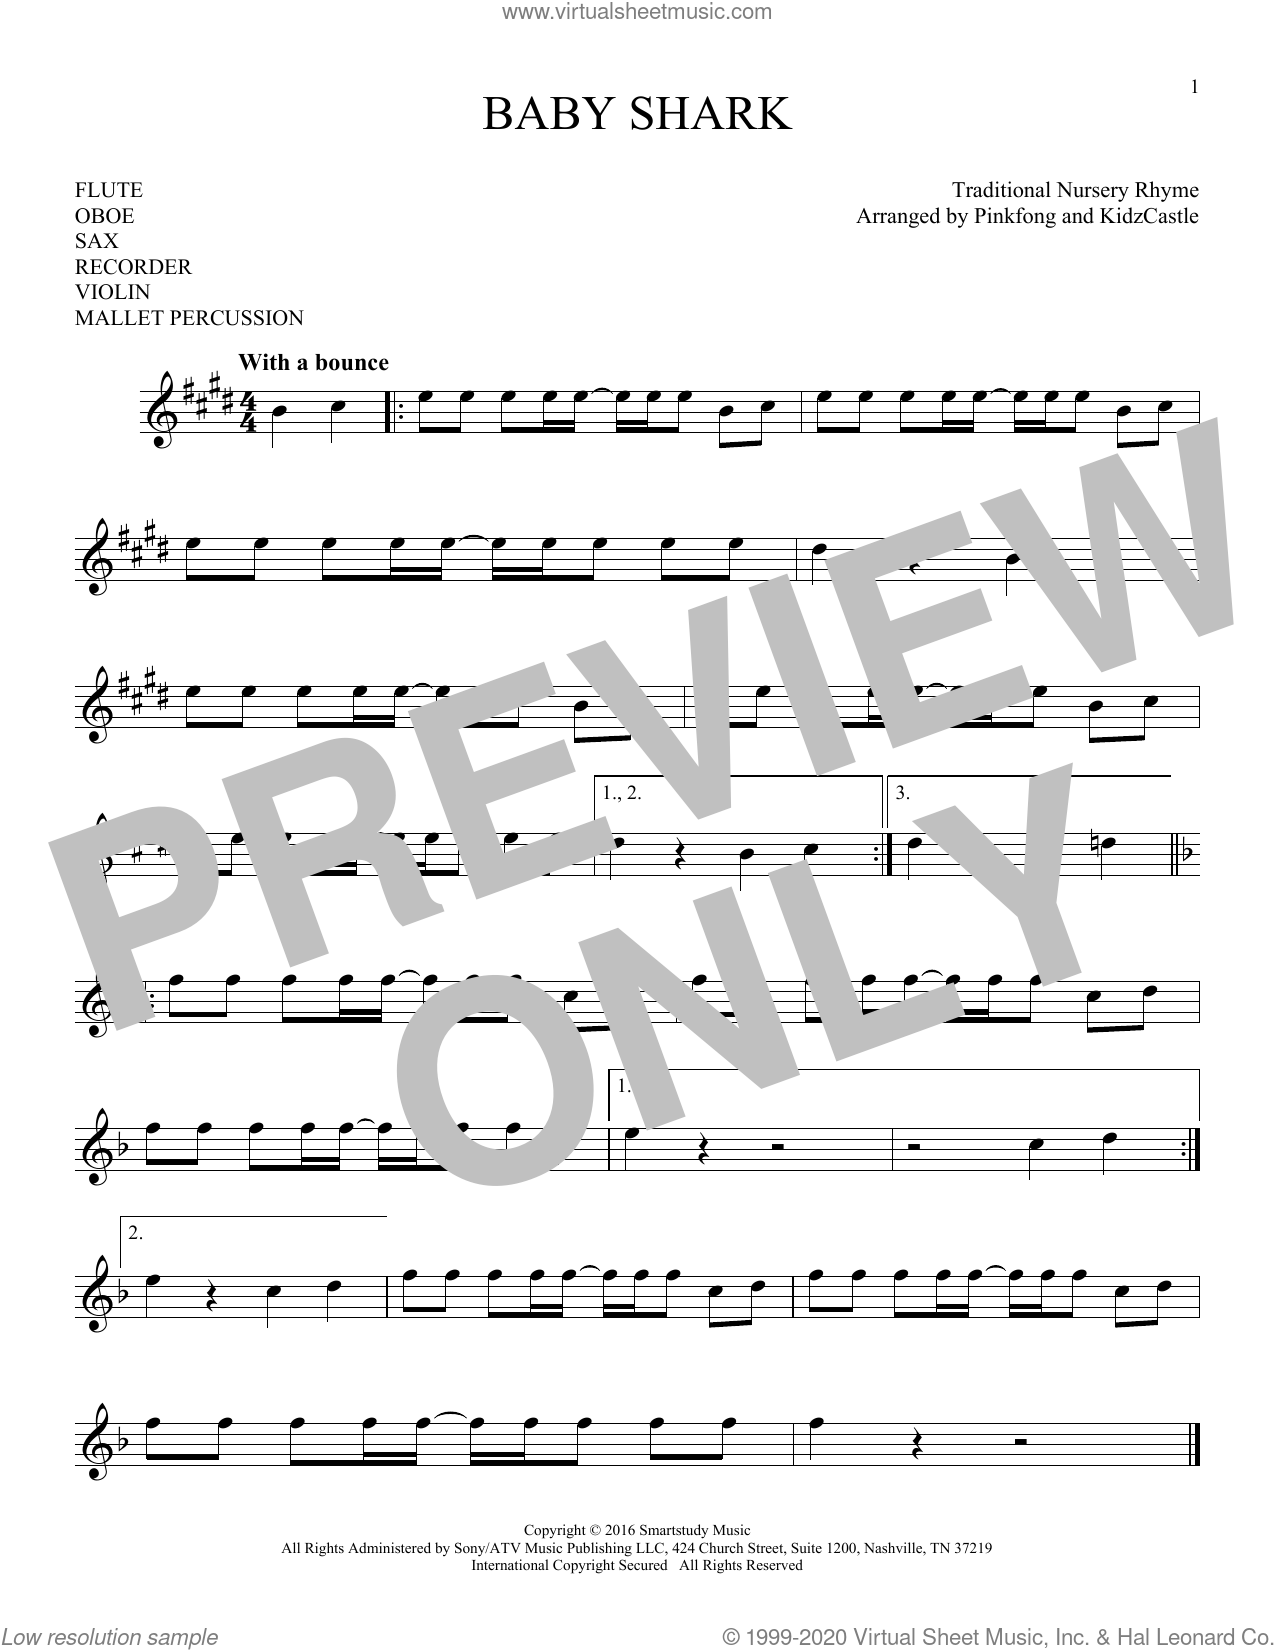 Baby Shark sheet music for Solo Instrument (treble clef high) by Pinkfong, KidzCastle and Traditional Nursery Rhyme, intermediate skill level